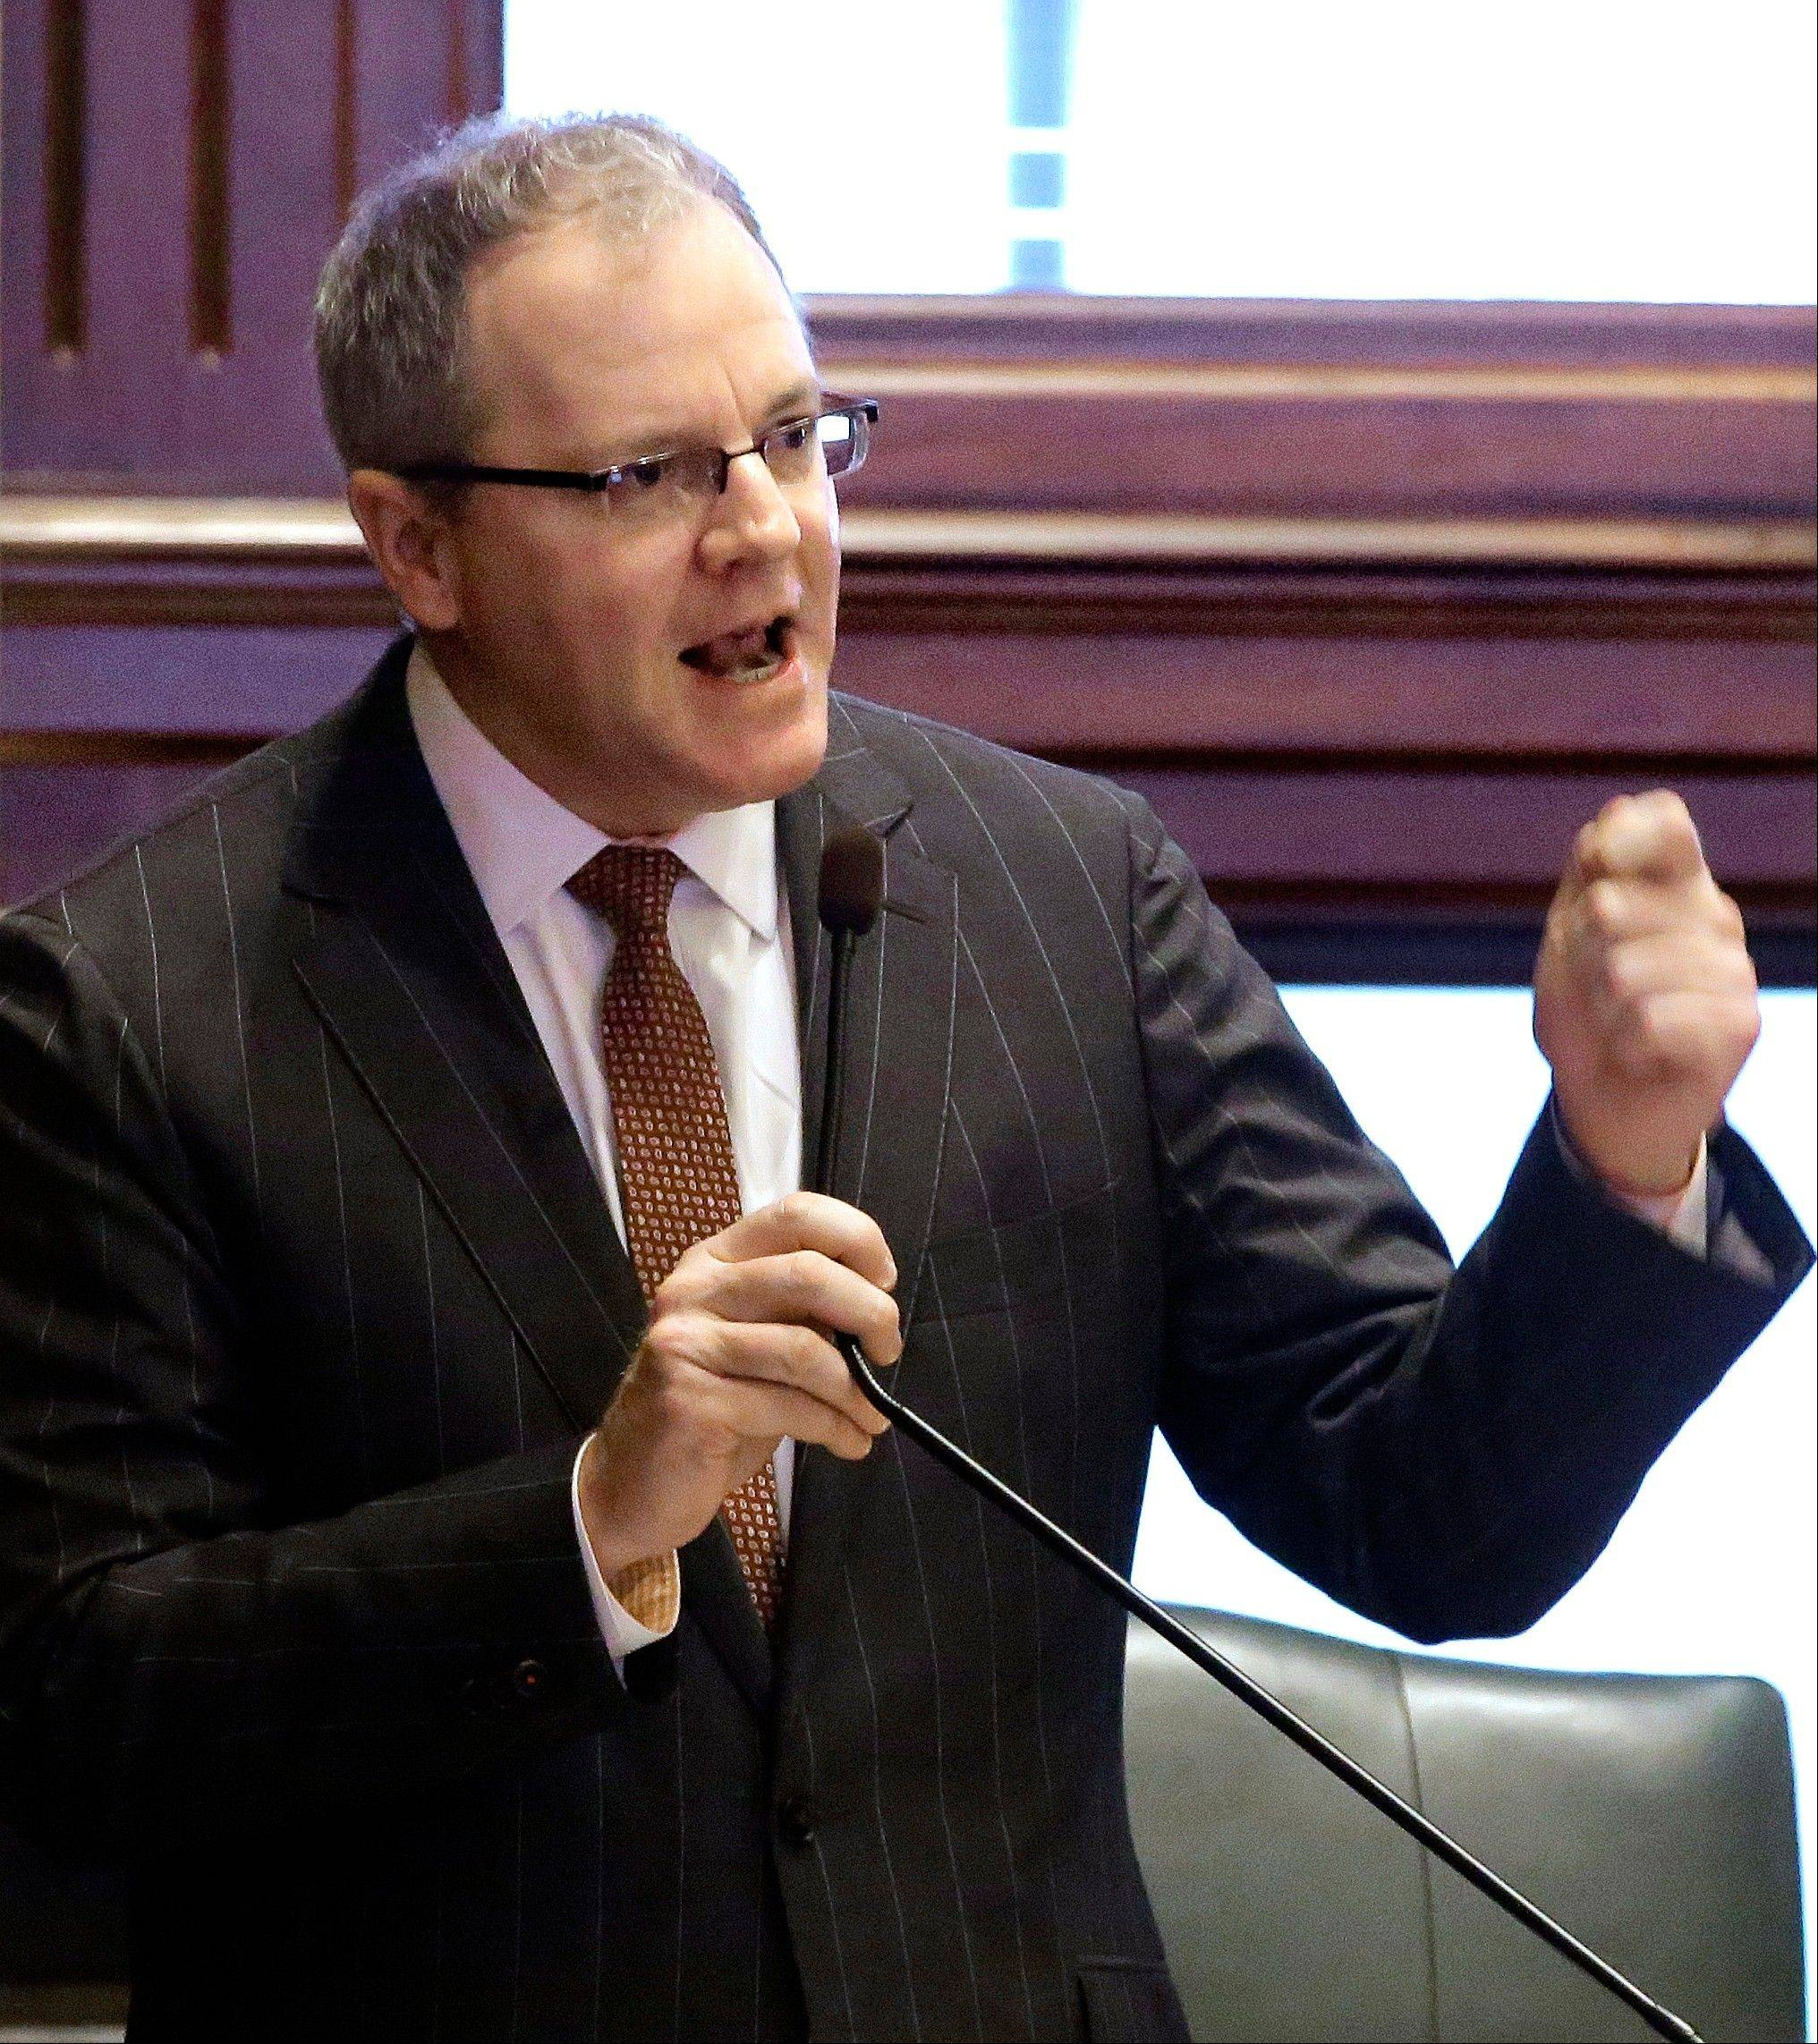 Illinois State Rep. Bill Mitchell, a Decatur Republican, argues legislation while on the House floor during a session this fall in Springfield.